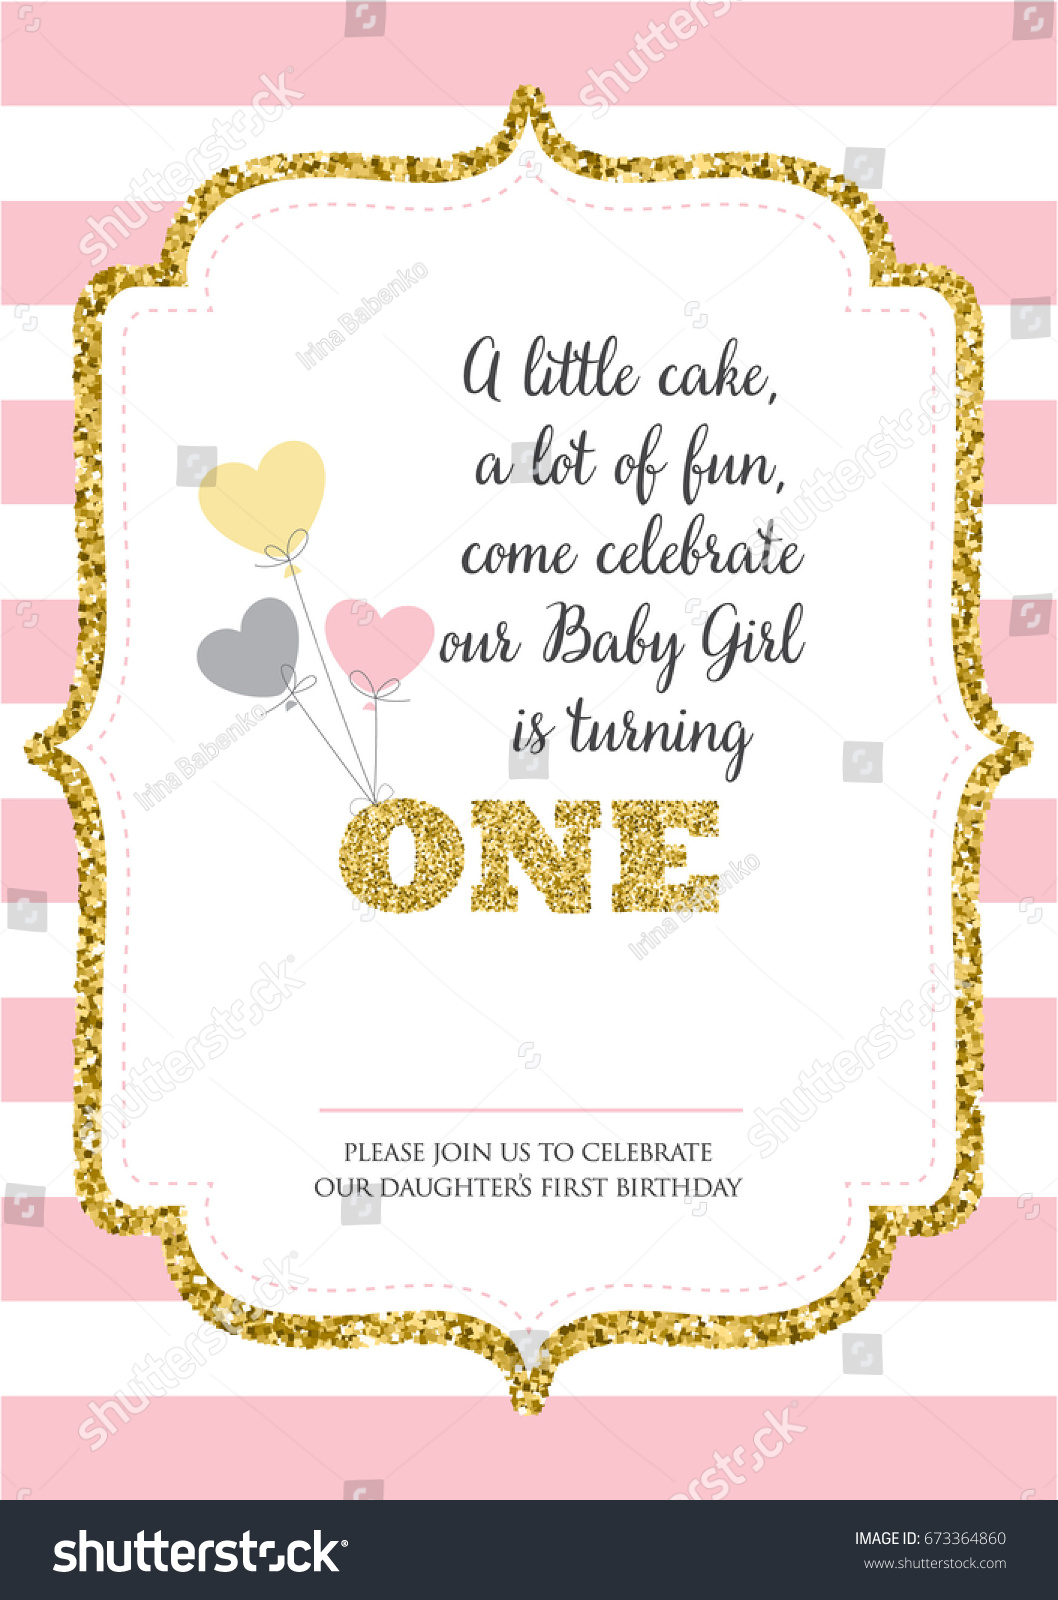 First birthday invitation girl one year stock vector 673364860 first birthday invitation for girl one year old party printable vector template with pink stopboris Image collections